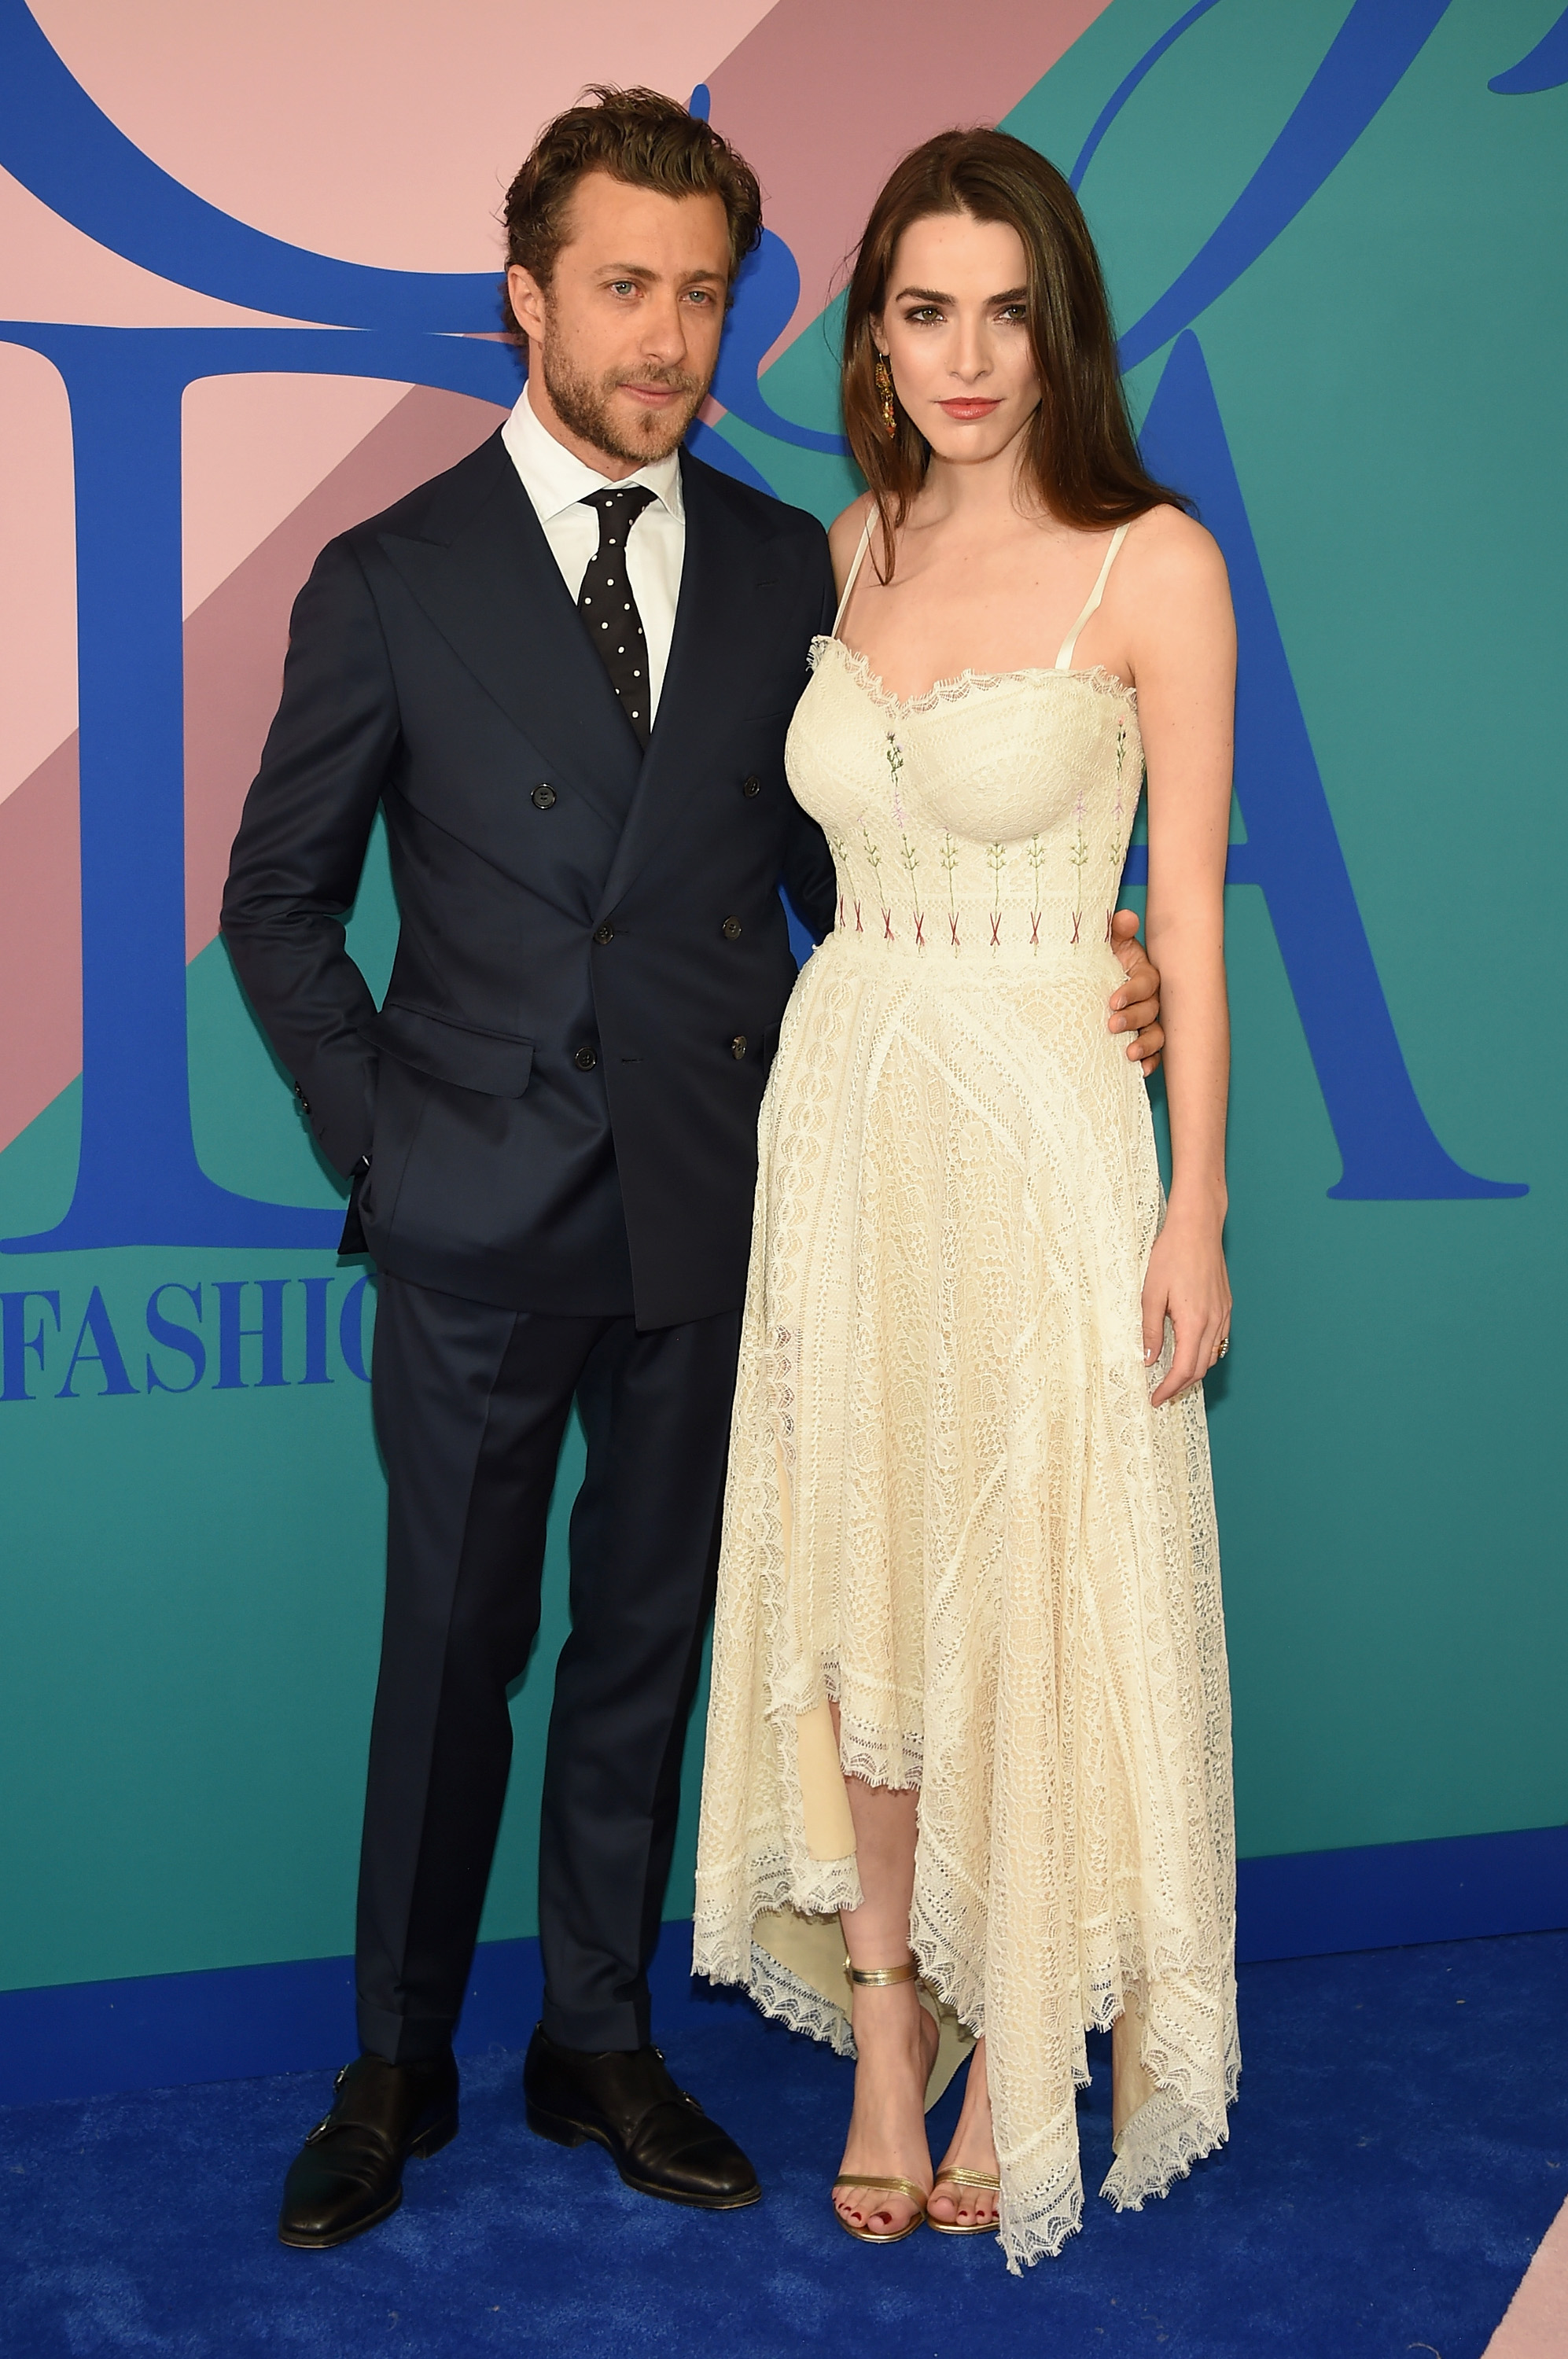 NEW YORK, NY - JUNE 05:  Francesco Carrozzini and Bee Shaffer attend the 2017 CFDA Fashion Awards at Hammerstein Ballroom on June 5, 2017 in New York City.  (Photo by Dimitrios Kambouris/Getty Images)